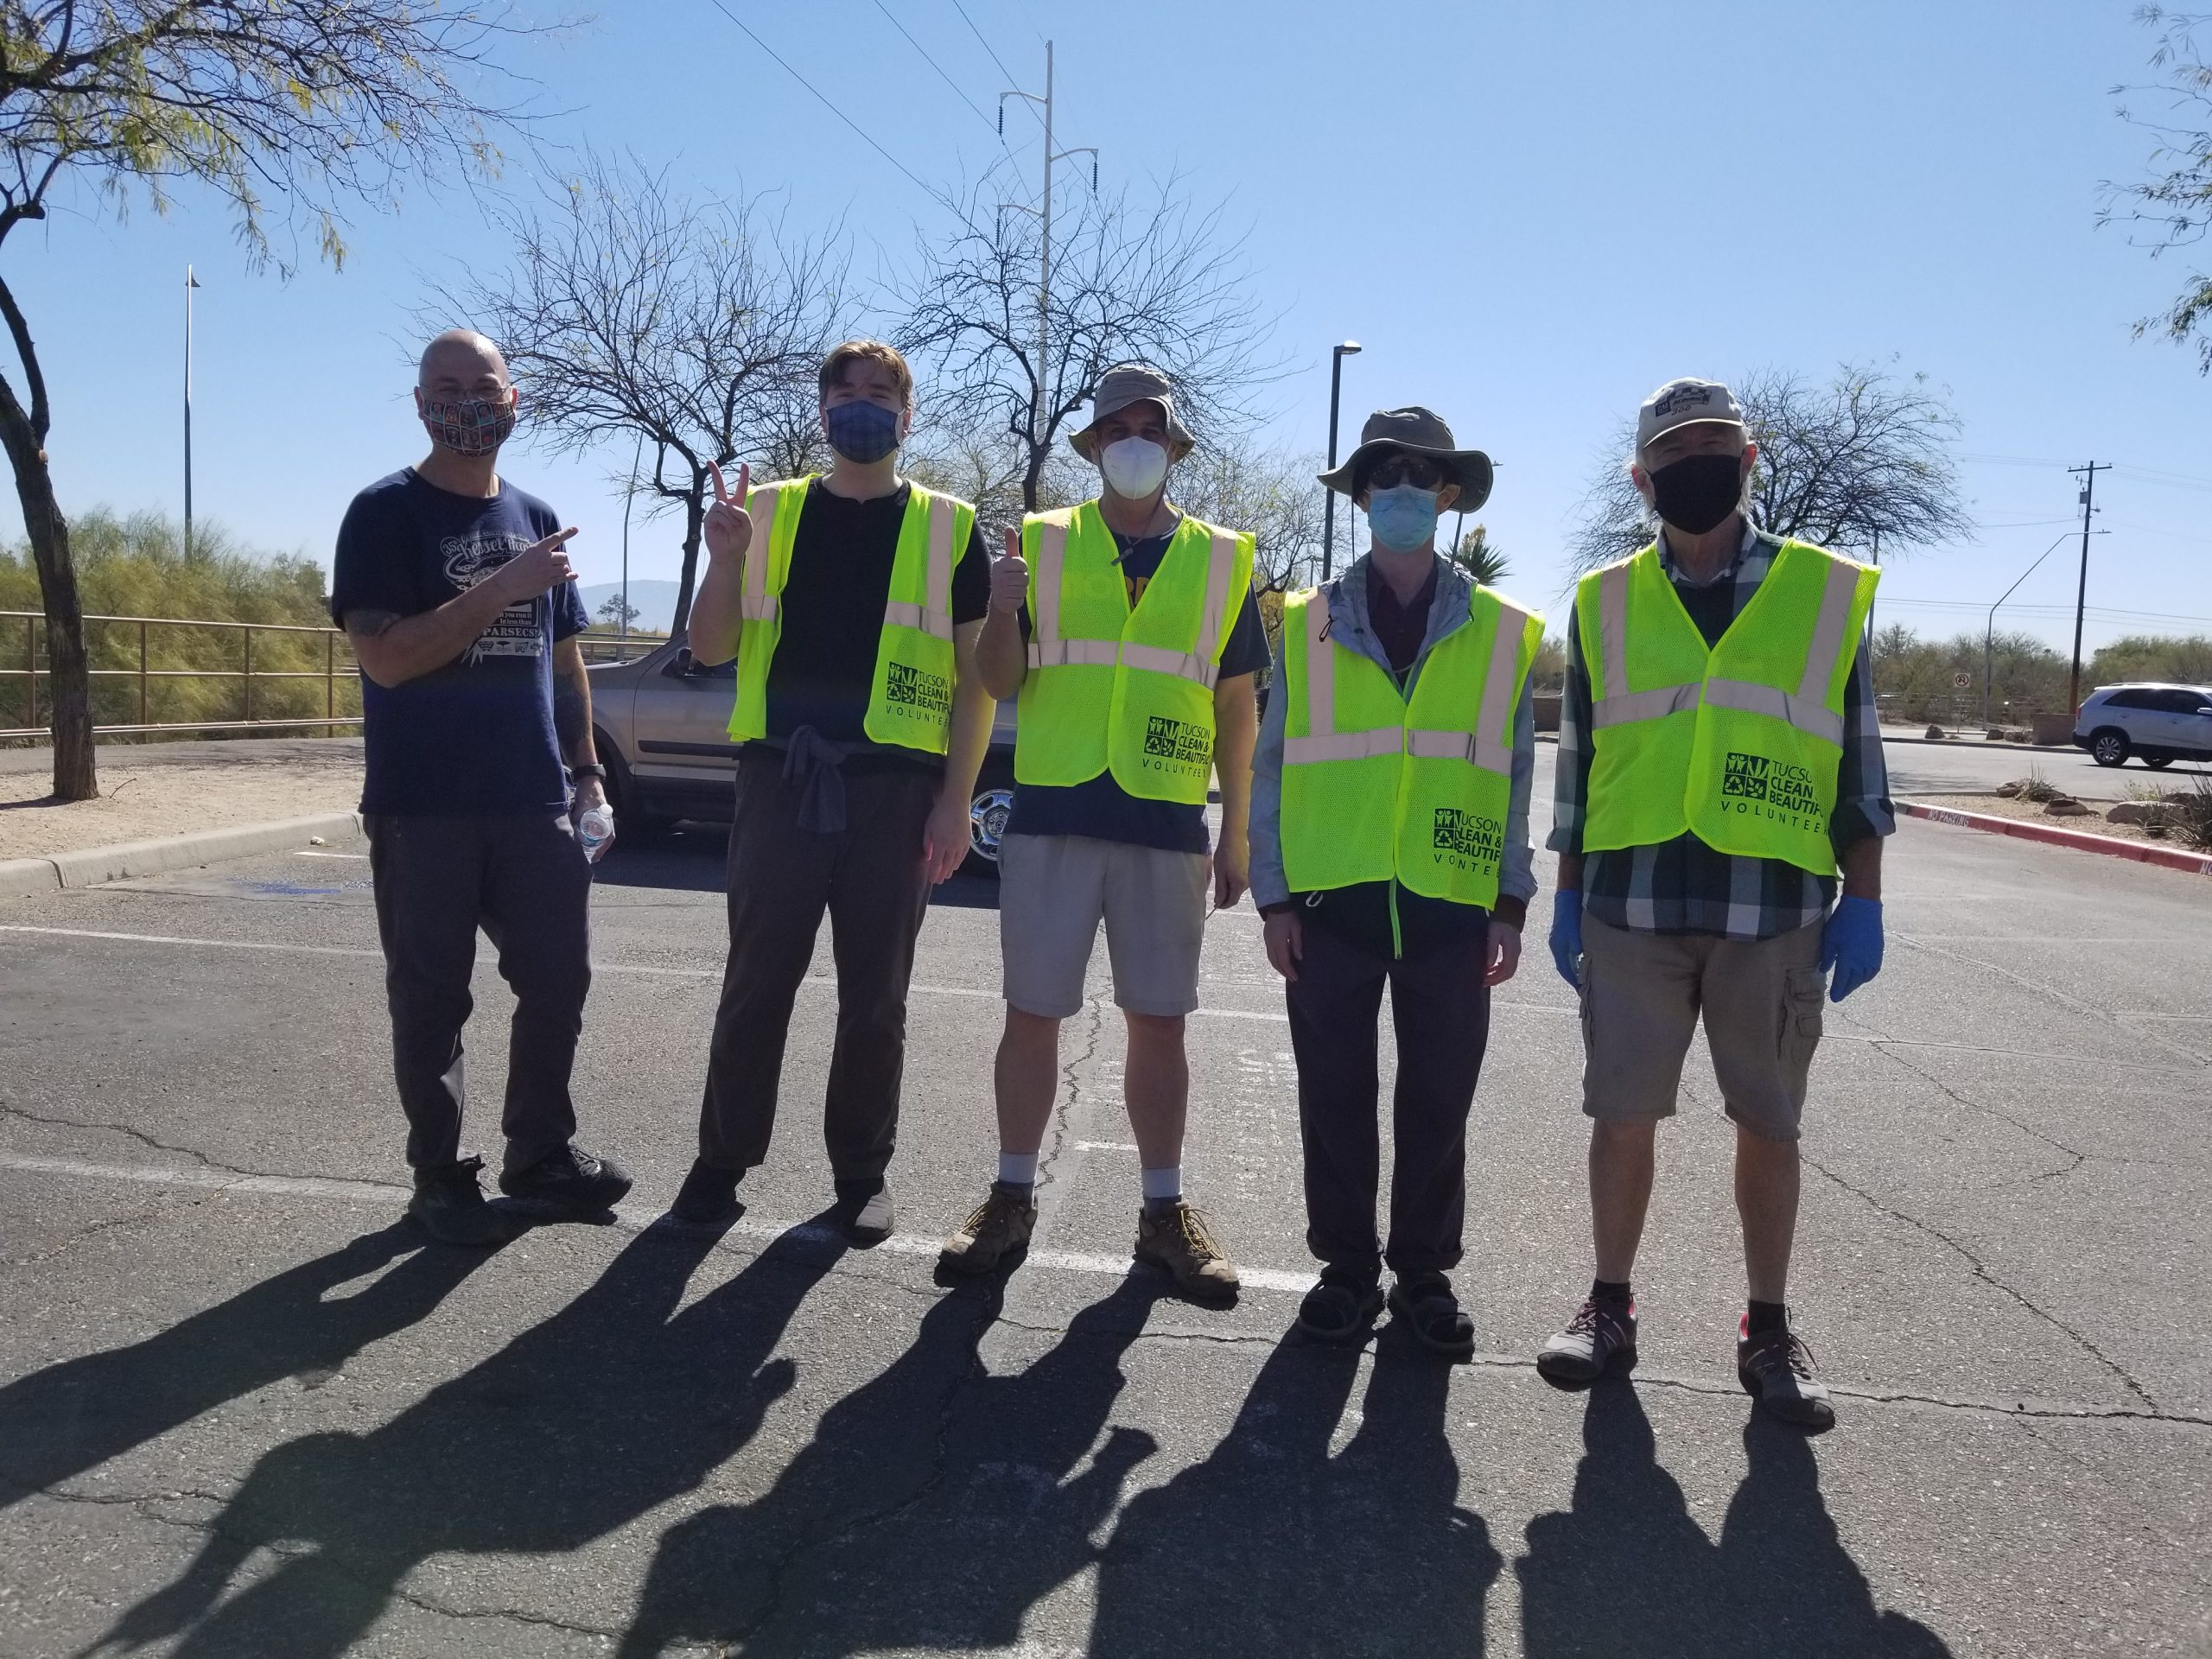 highway cleaning of campbell avenue tucson clean and beautiful